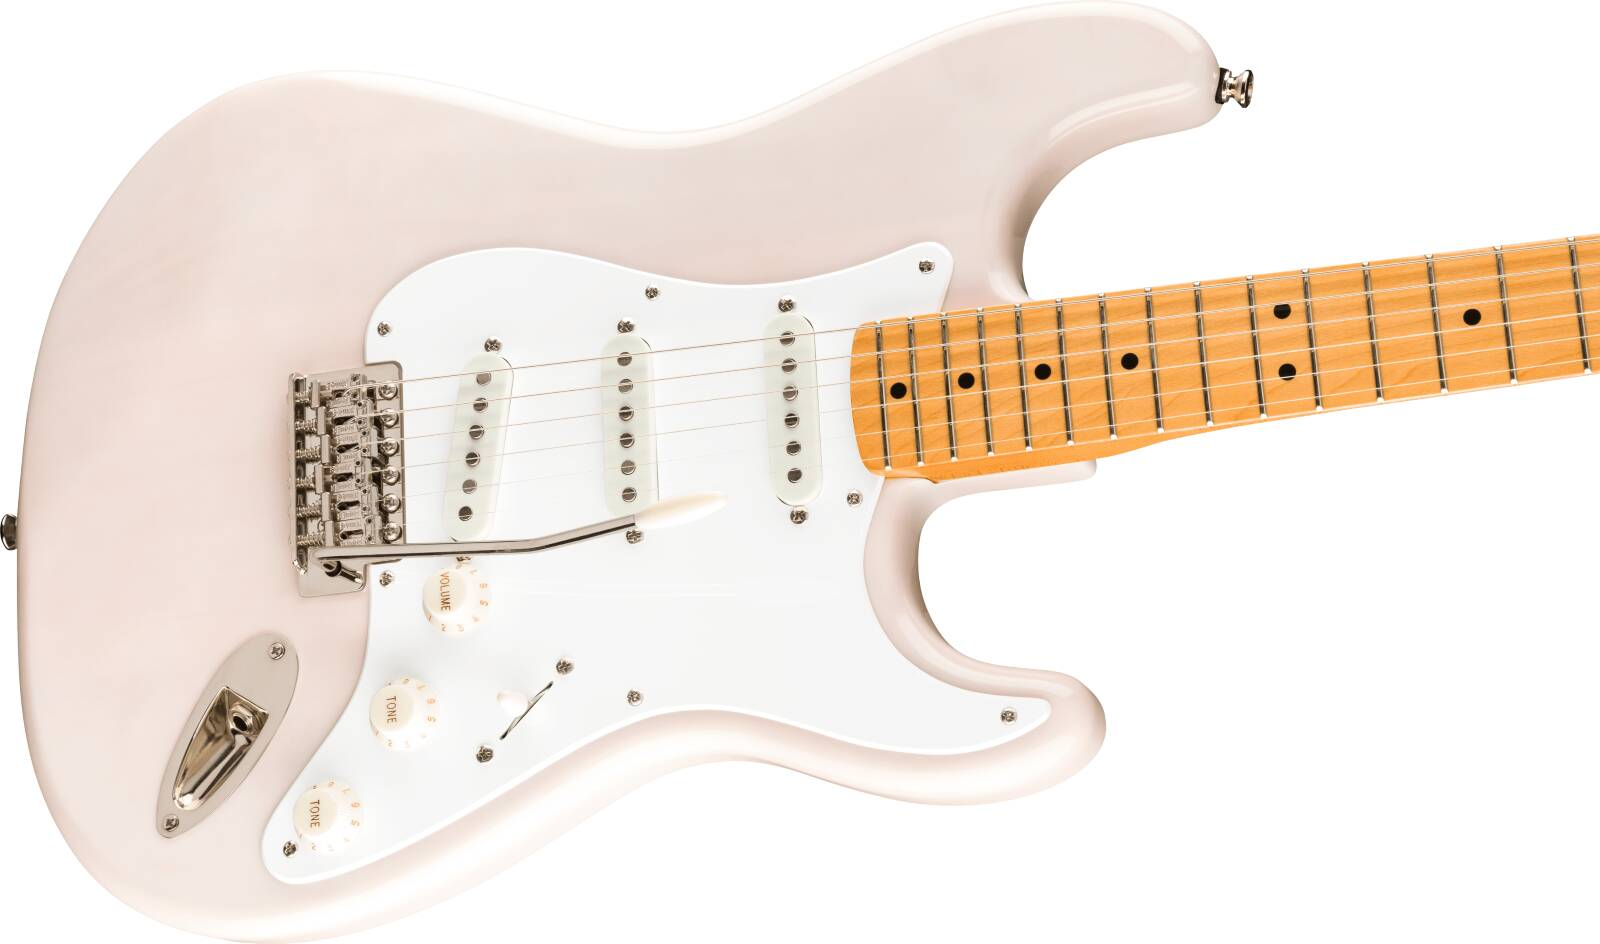 Squier Classic Vibe '50s Stratocaster Maple Fingerboard White Blonde : photo 3